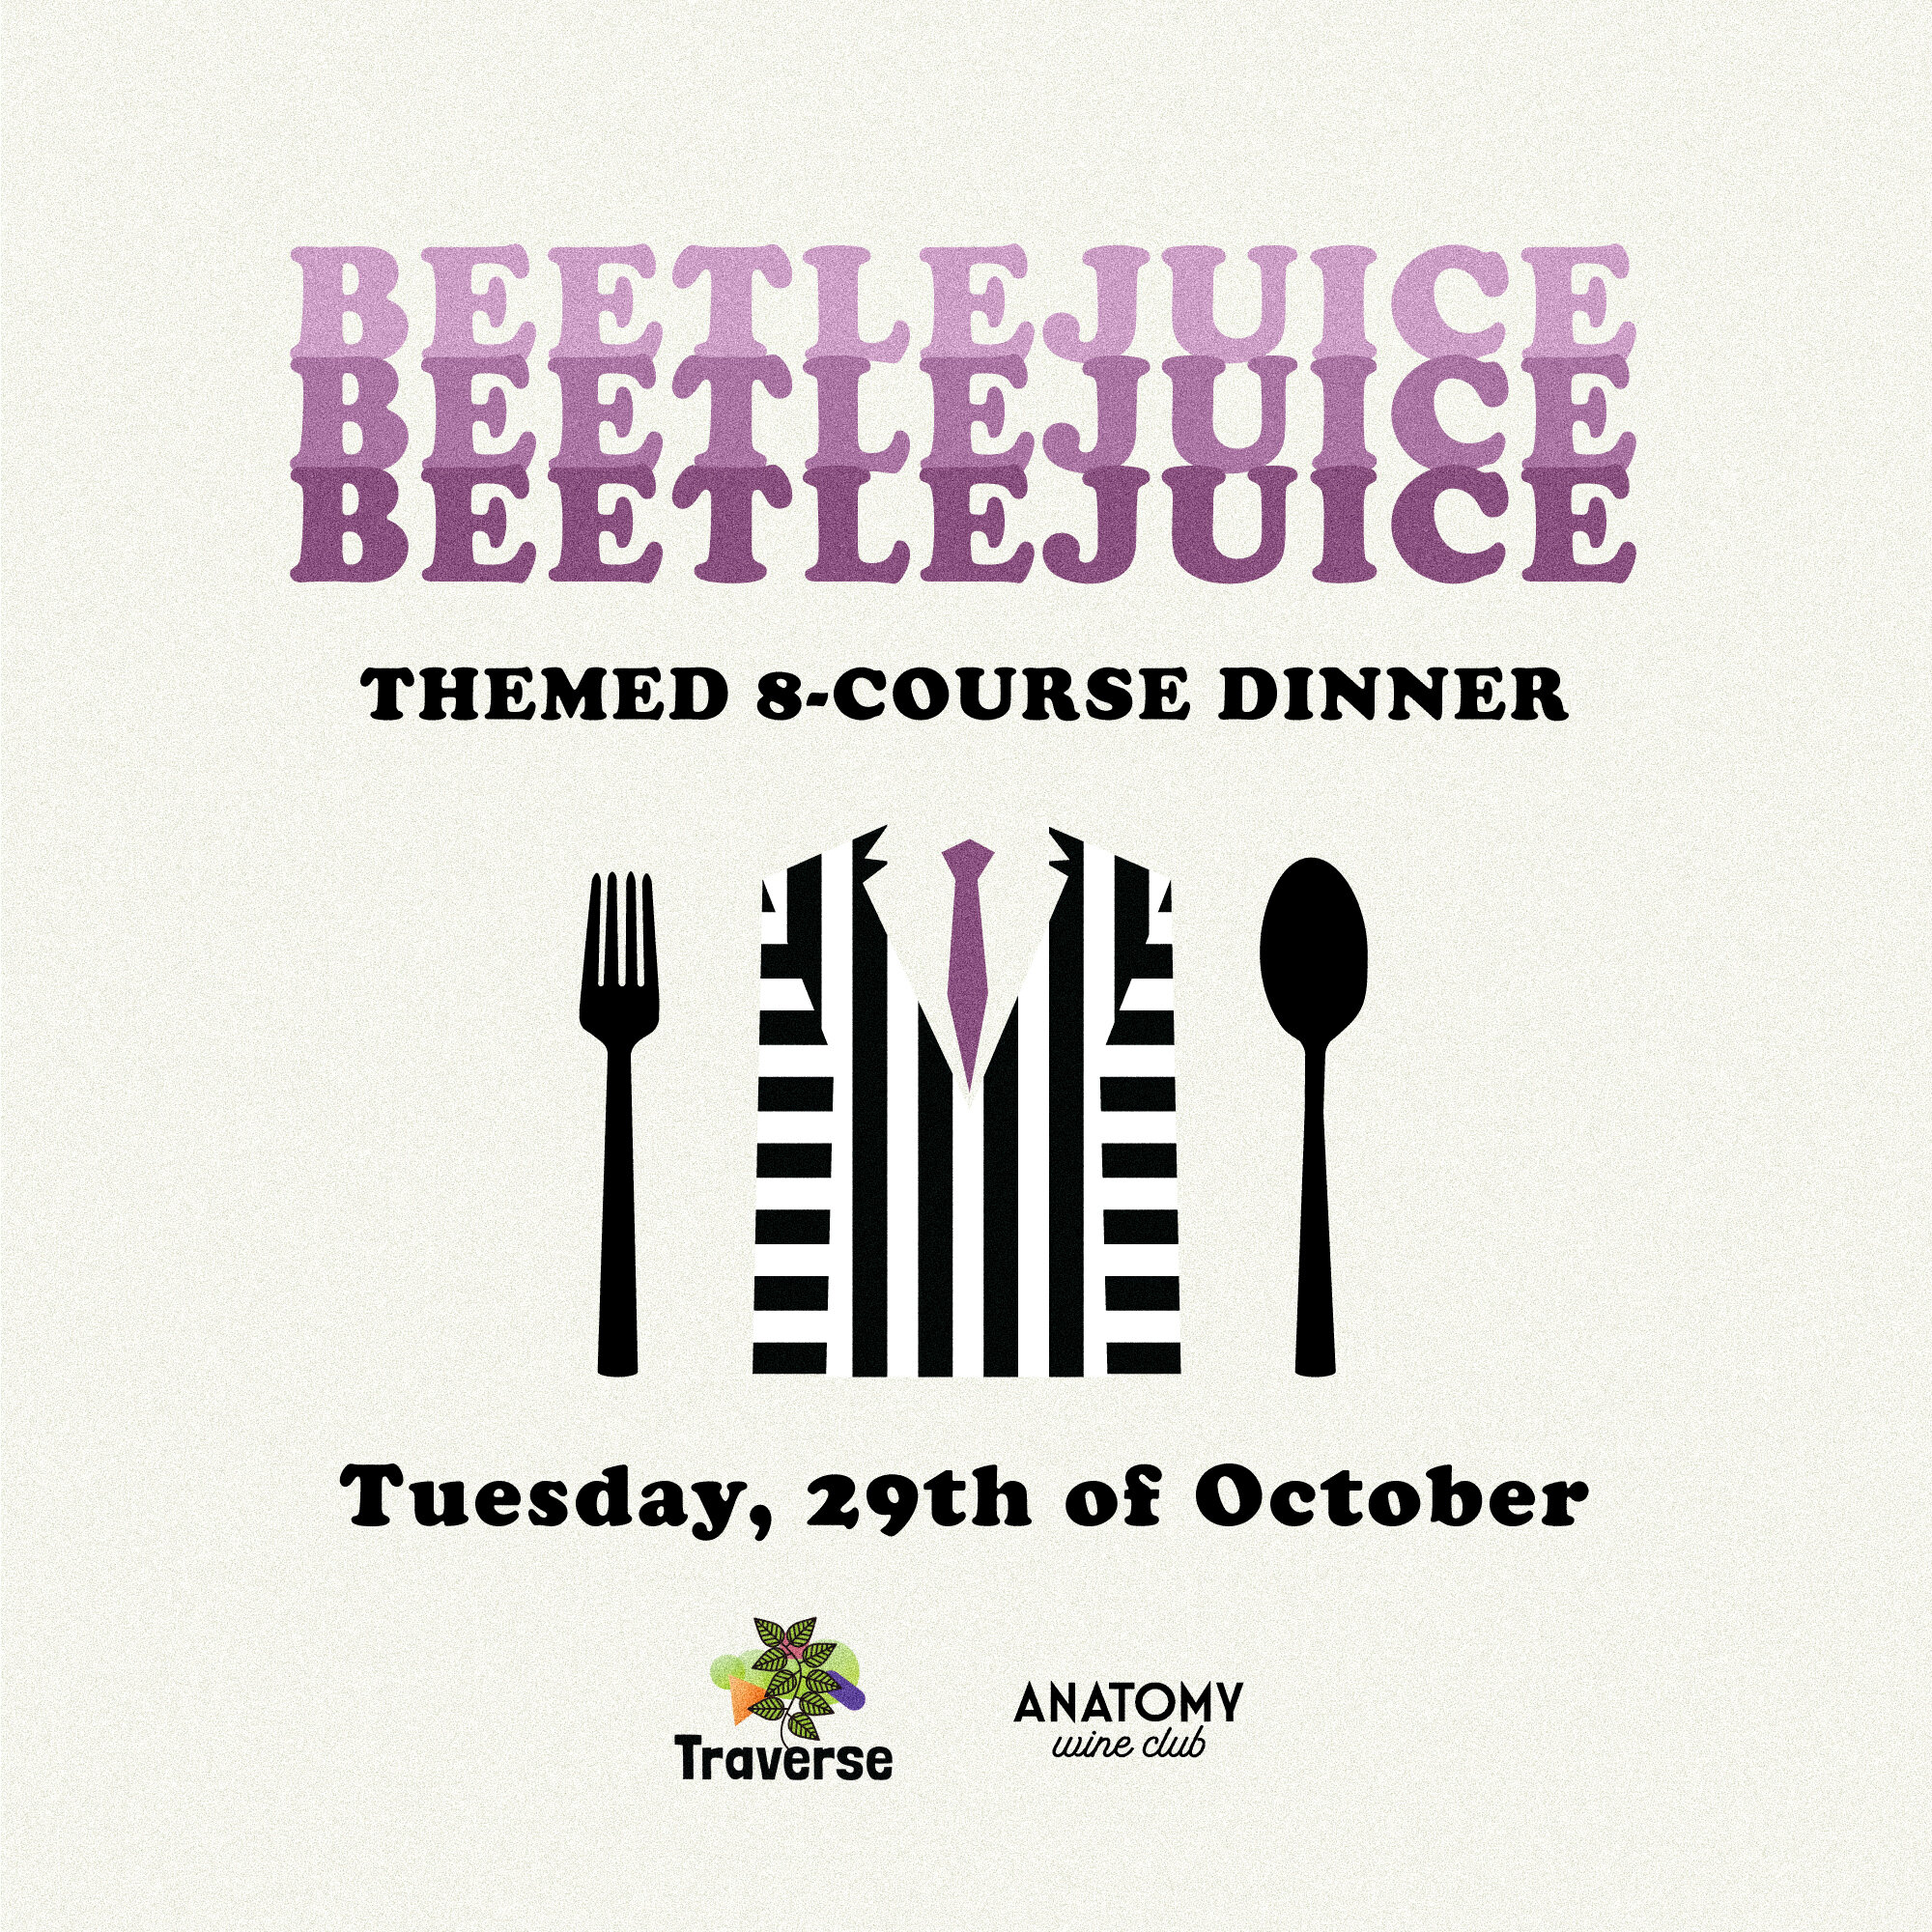 Chef's dinner - Anatomy hosts a pop-up dinner by Traverse. Chefs from Traverse will excite you with an 8 course, Beetlejuice themed dinner.The dinner is $65 and there will only be 26 spots available so get your tickets now!